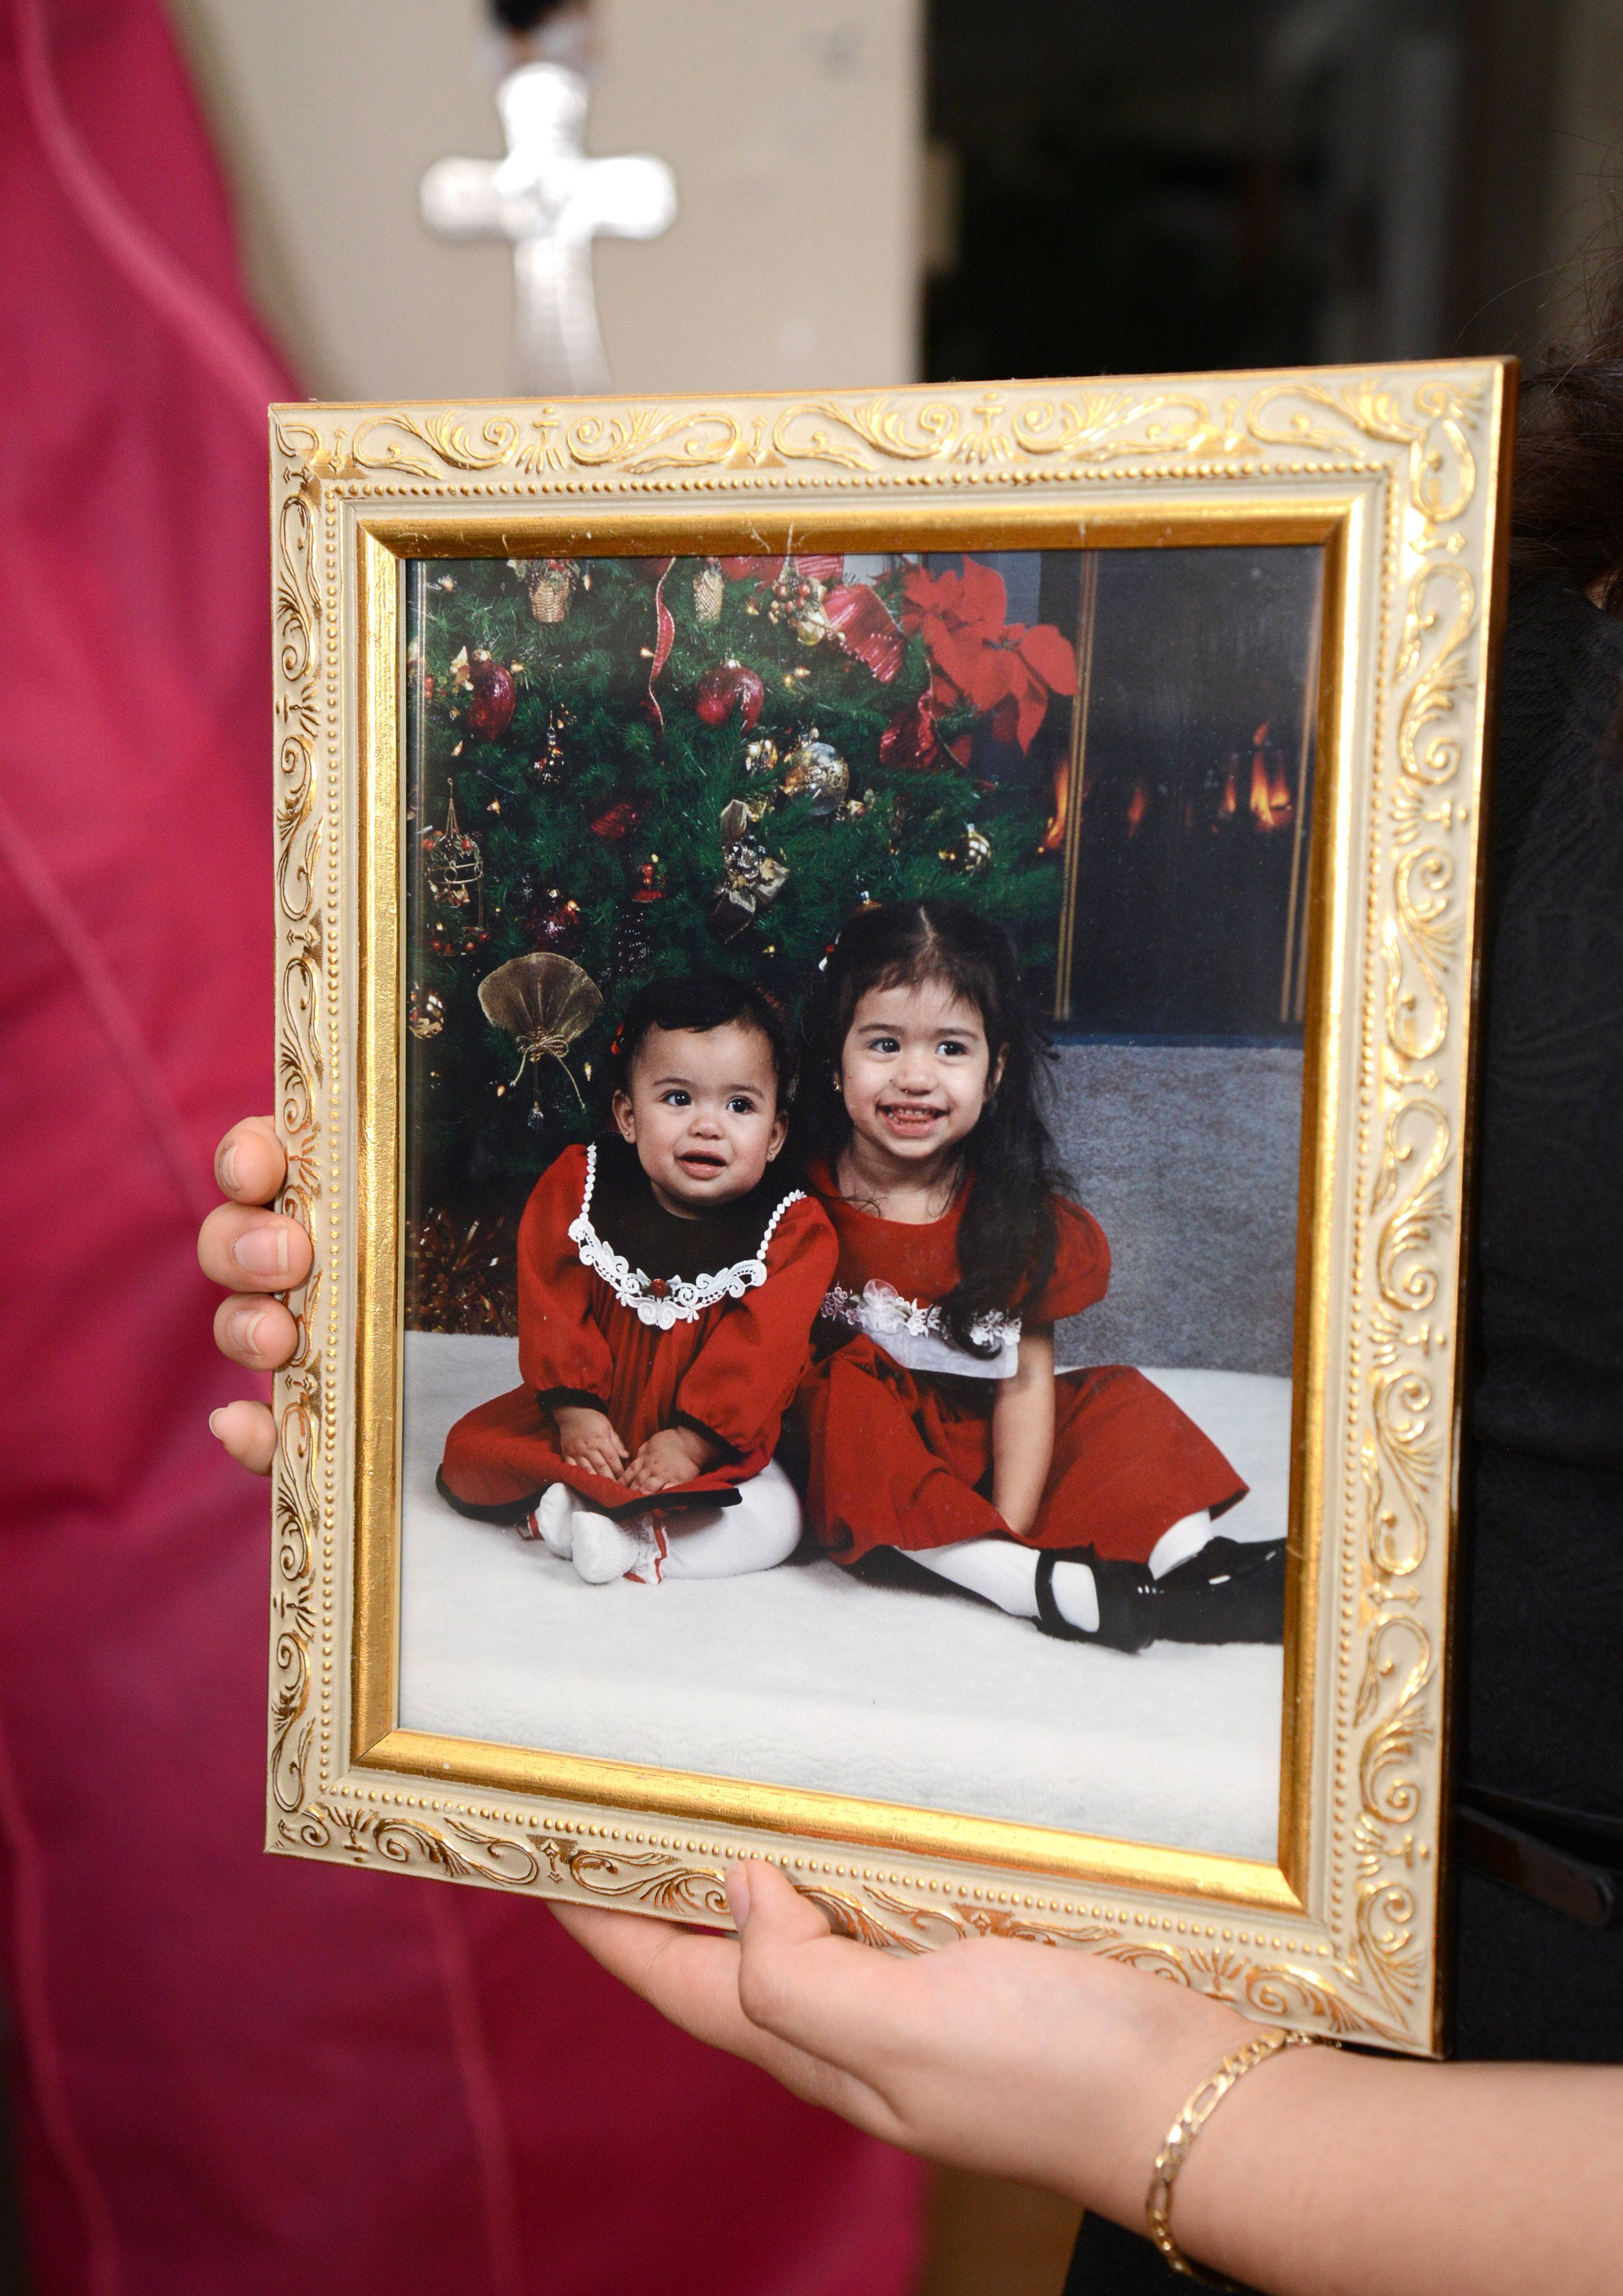 Joselyn, left, and Bianca Huerta, in 2001, just about a year before Joselyn would be diagnosed with a chronic nerve disorder that eventually took her life at age 12. Bianca always cared for Joselyn.Bian